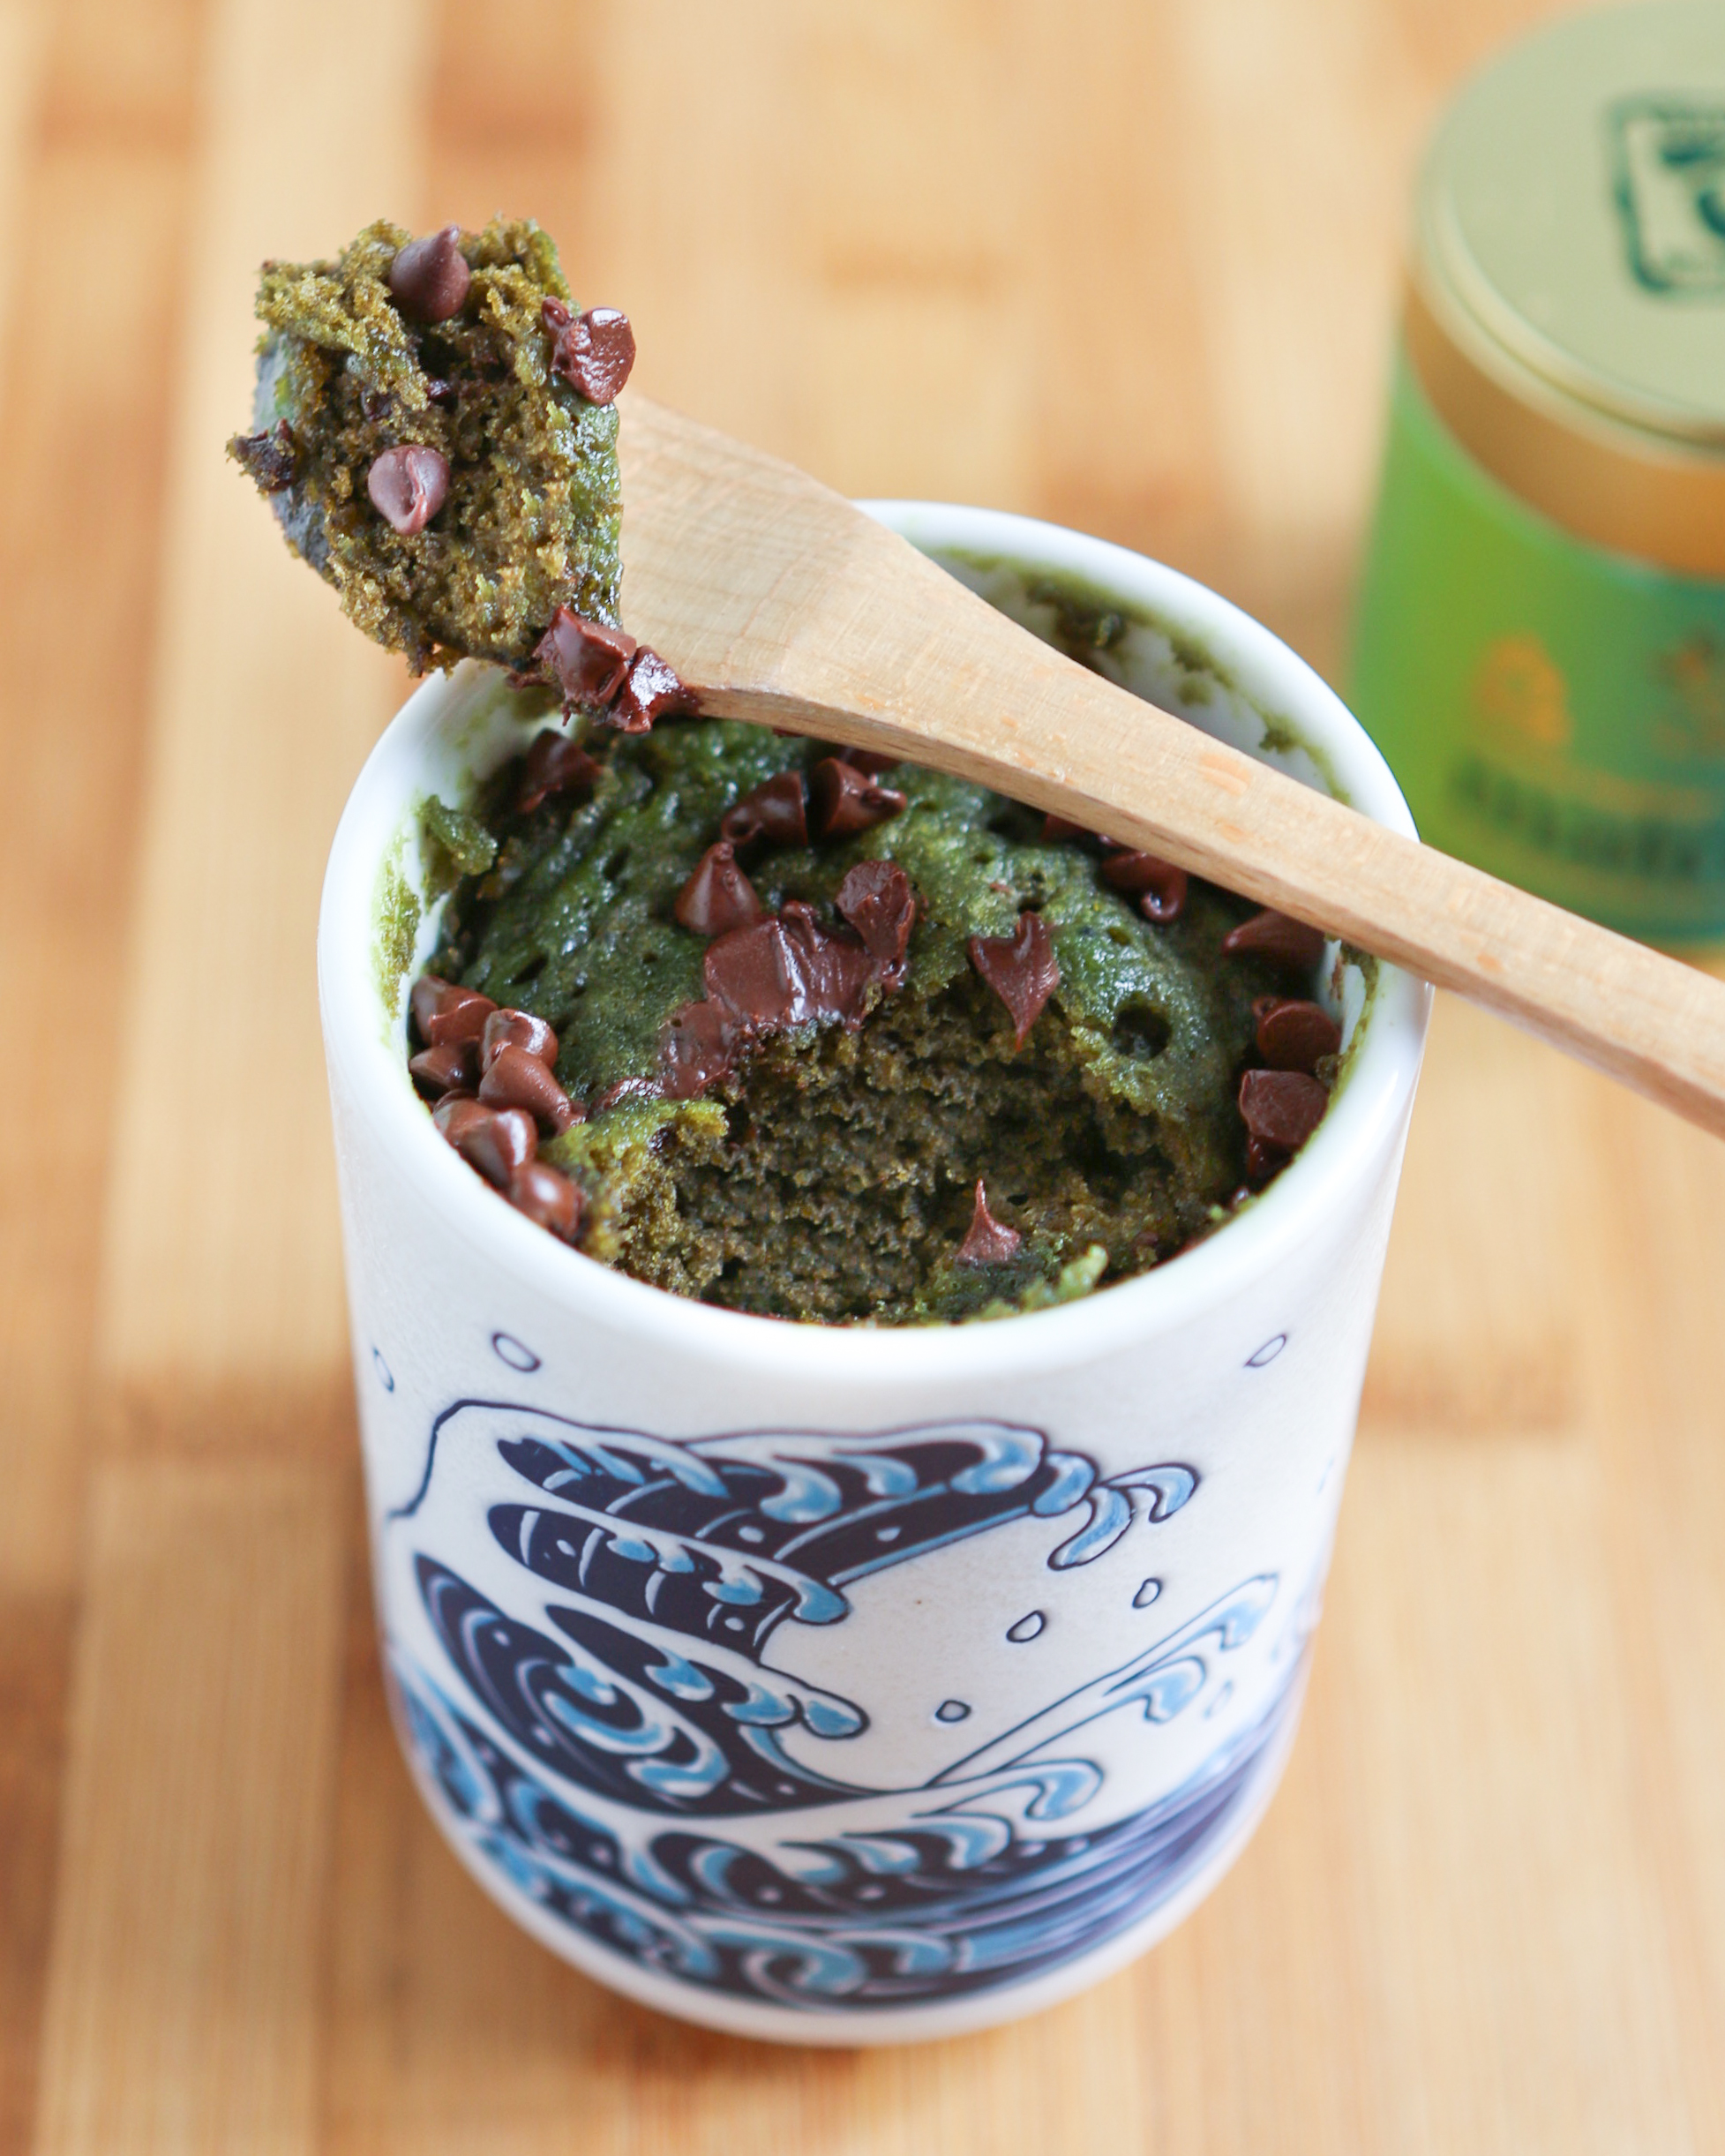 Thirsty For Tea Chocolate Chip Matcha Mug Cake